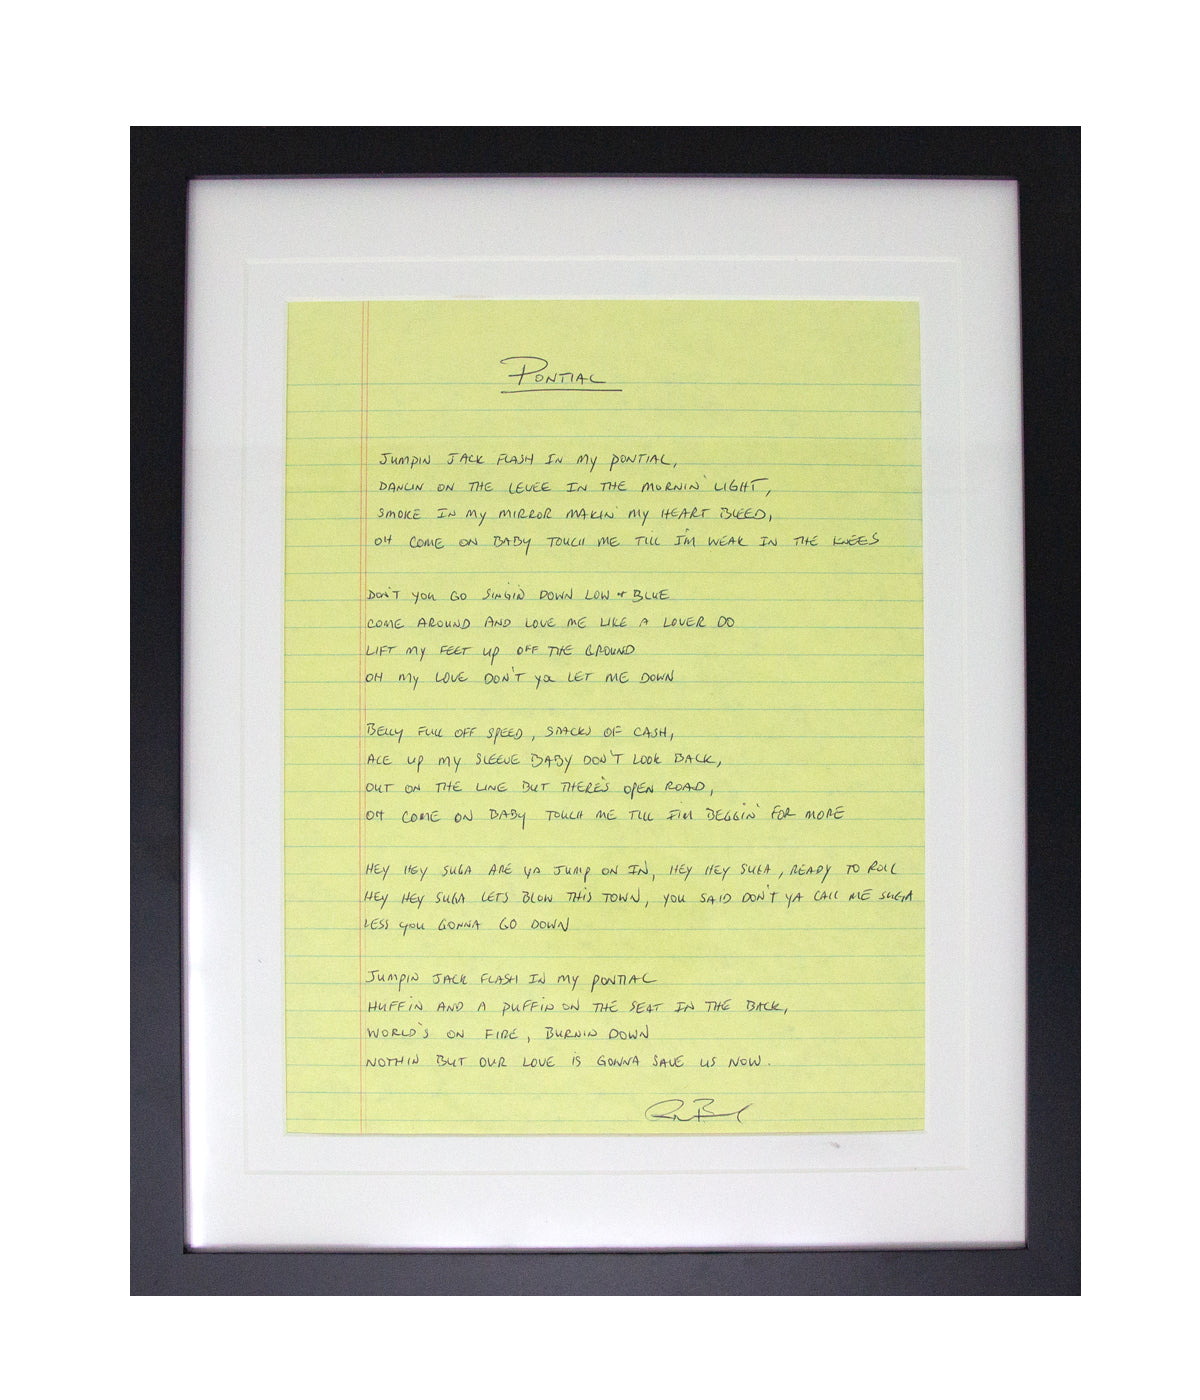 Ryan Bingham Pontiac Framed Handwritten Lyrics